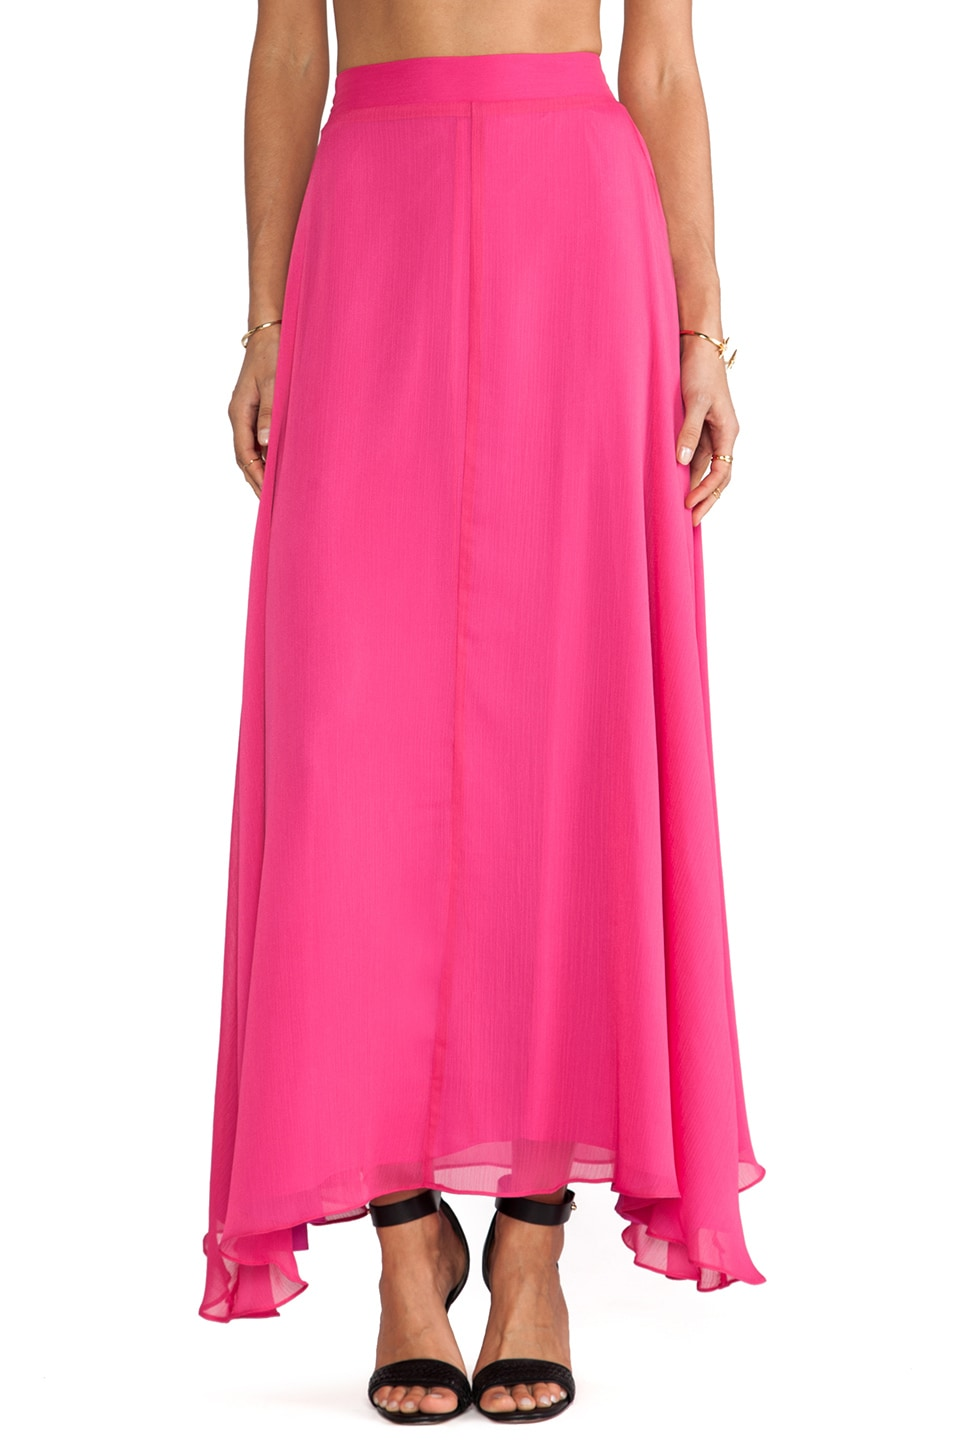 Naven Maxi Skirt in Pop Pink